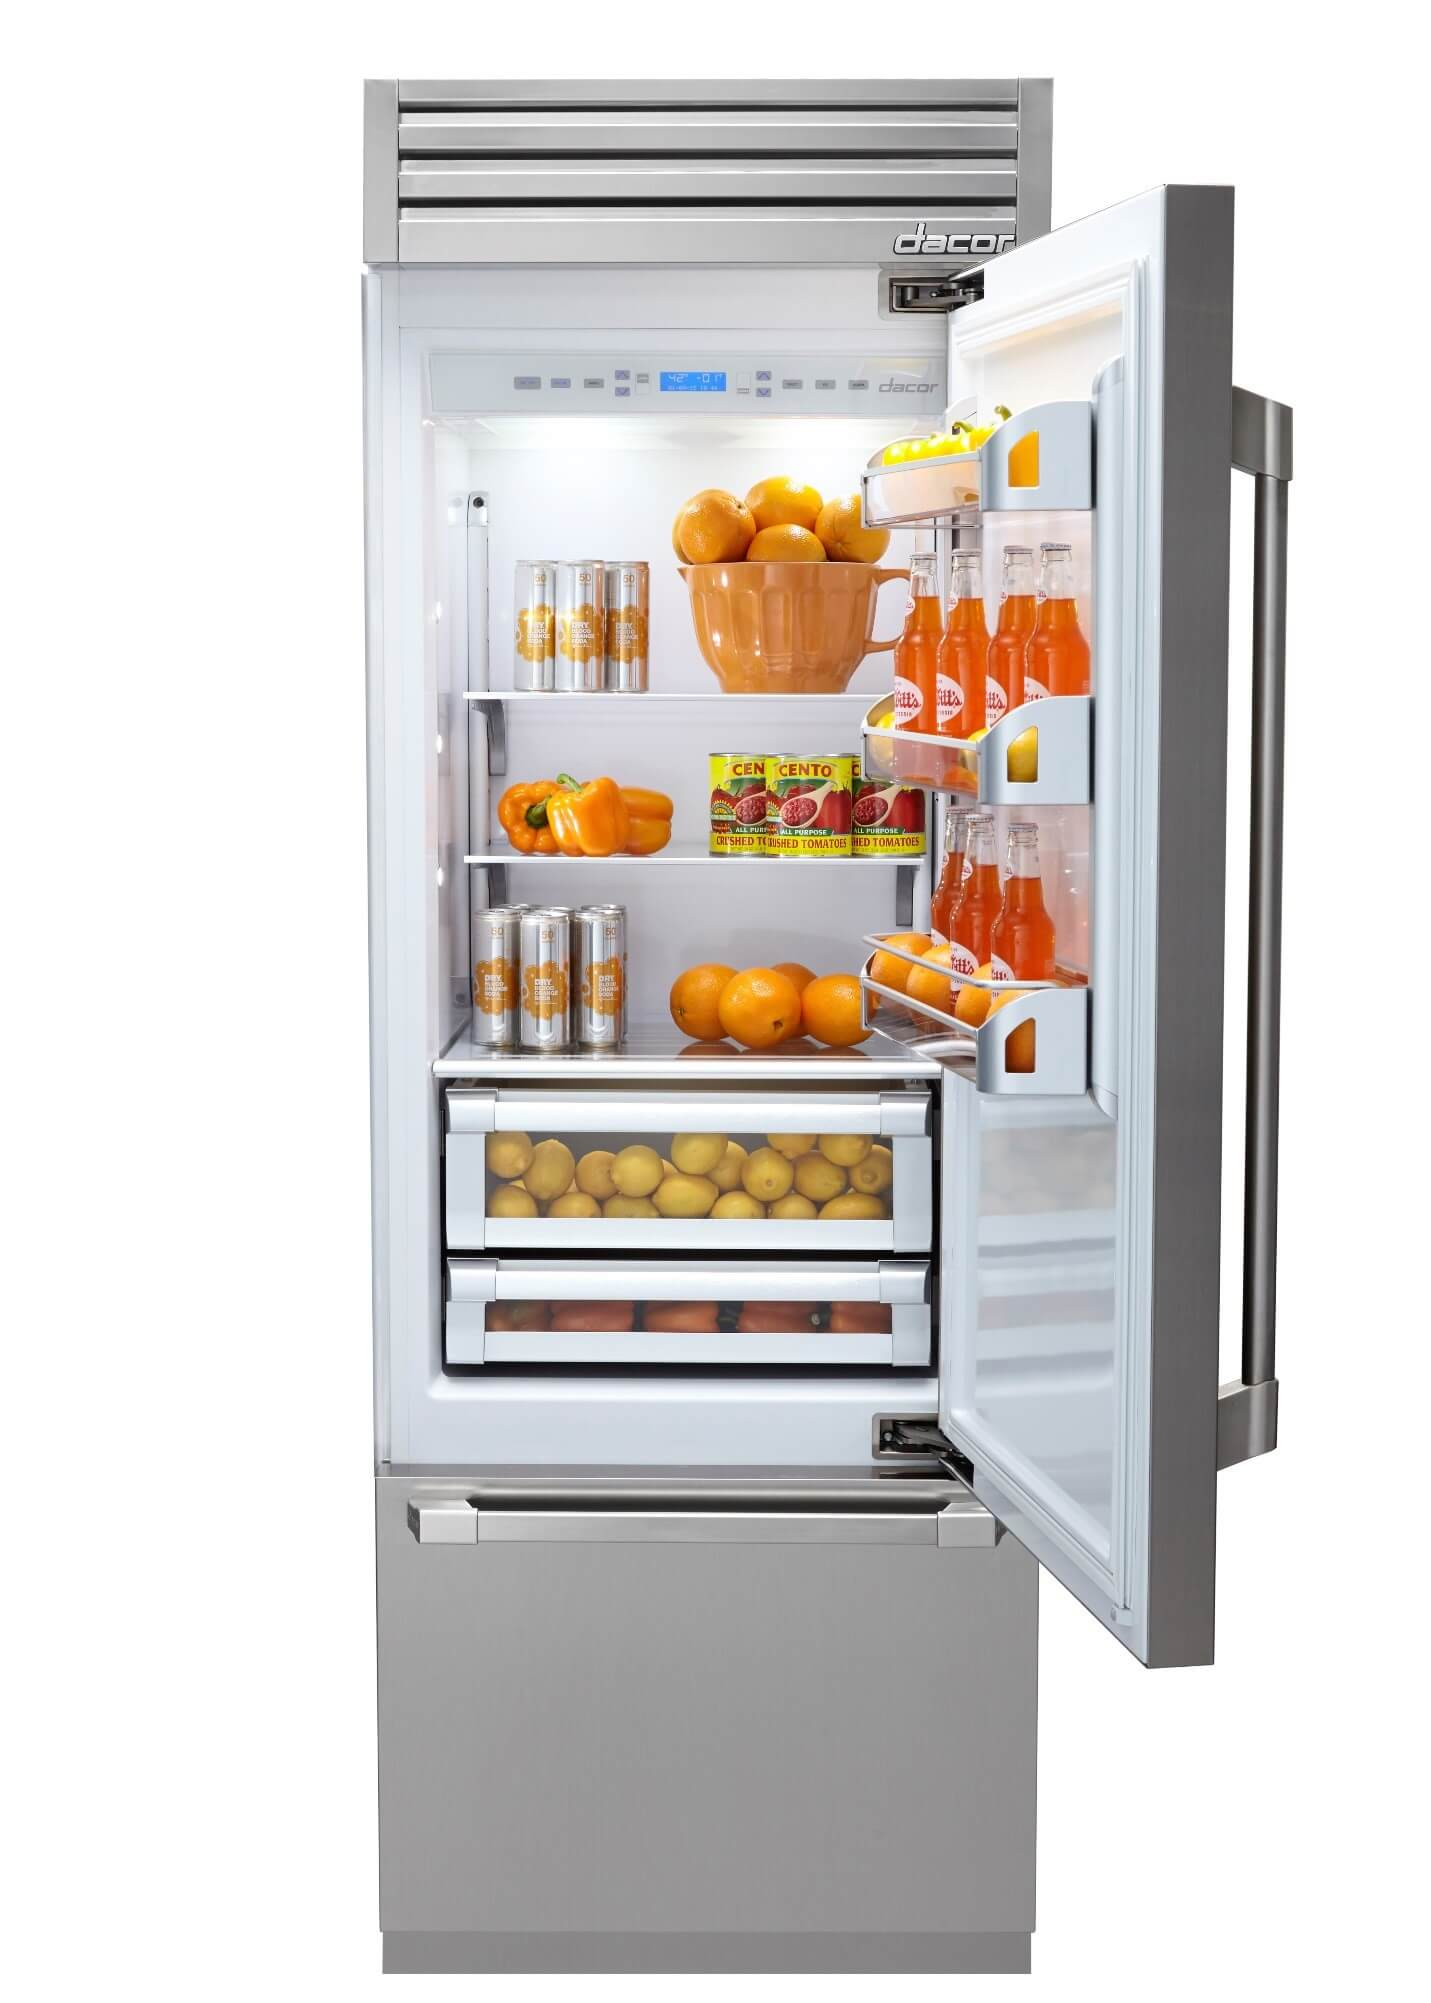 Available in May, the Dacor Discovery® 36- and 30-inch is an ultra-premium Fully Integrated Refrigerator with a host of features.